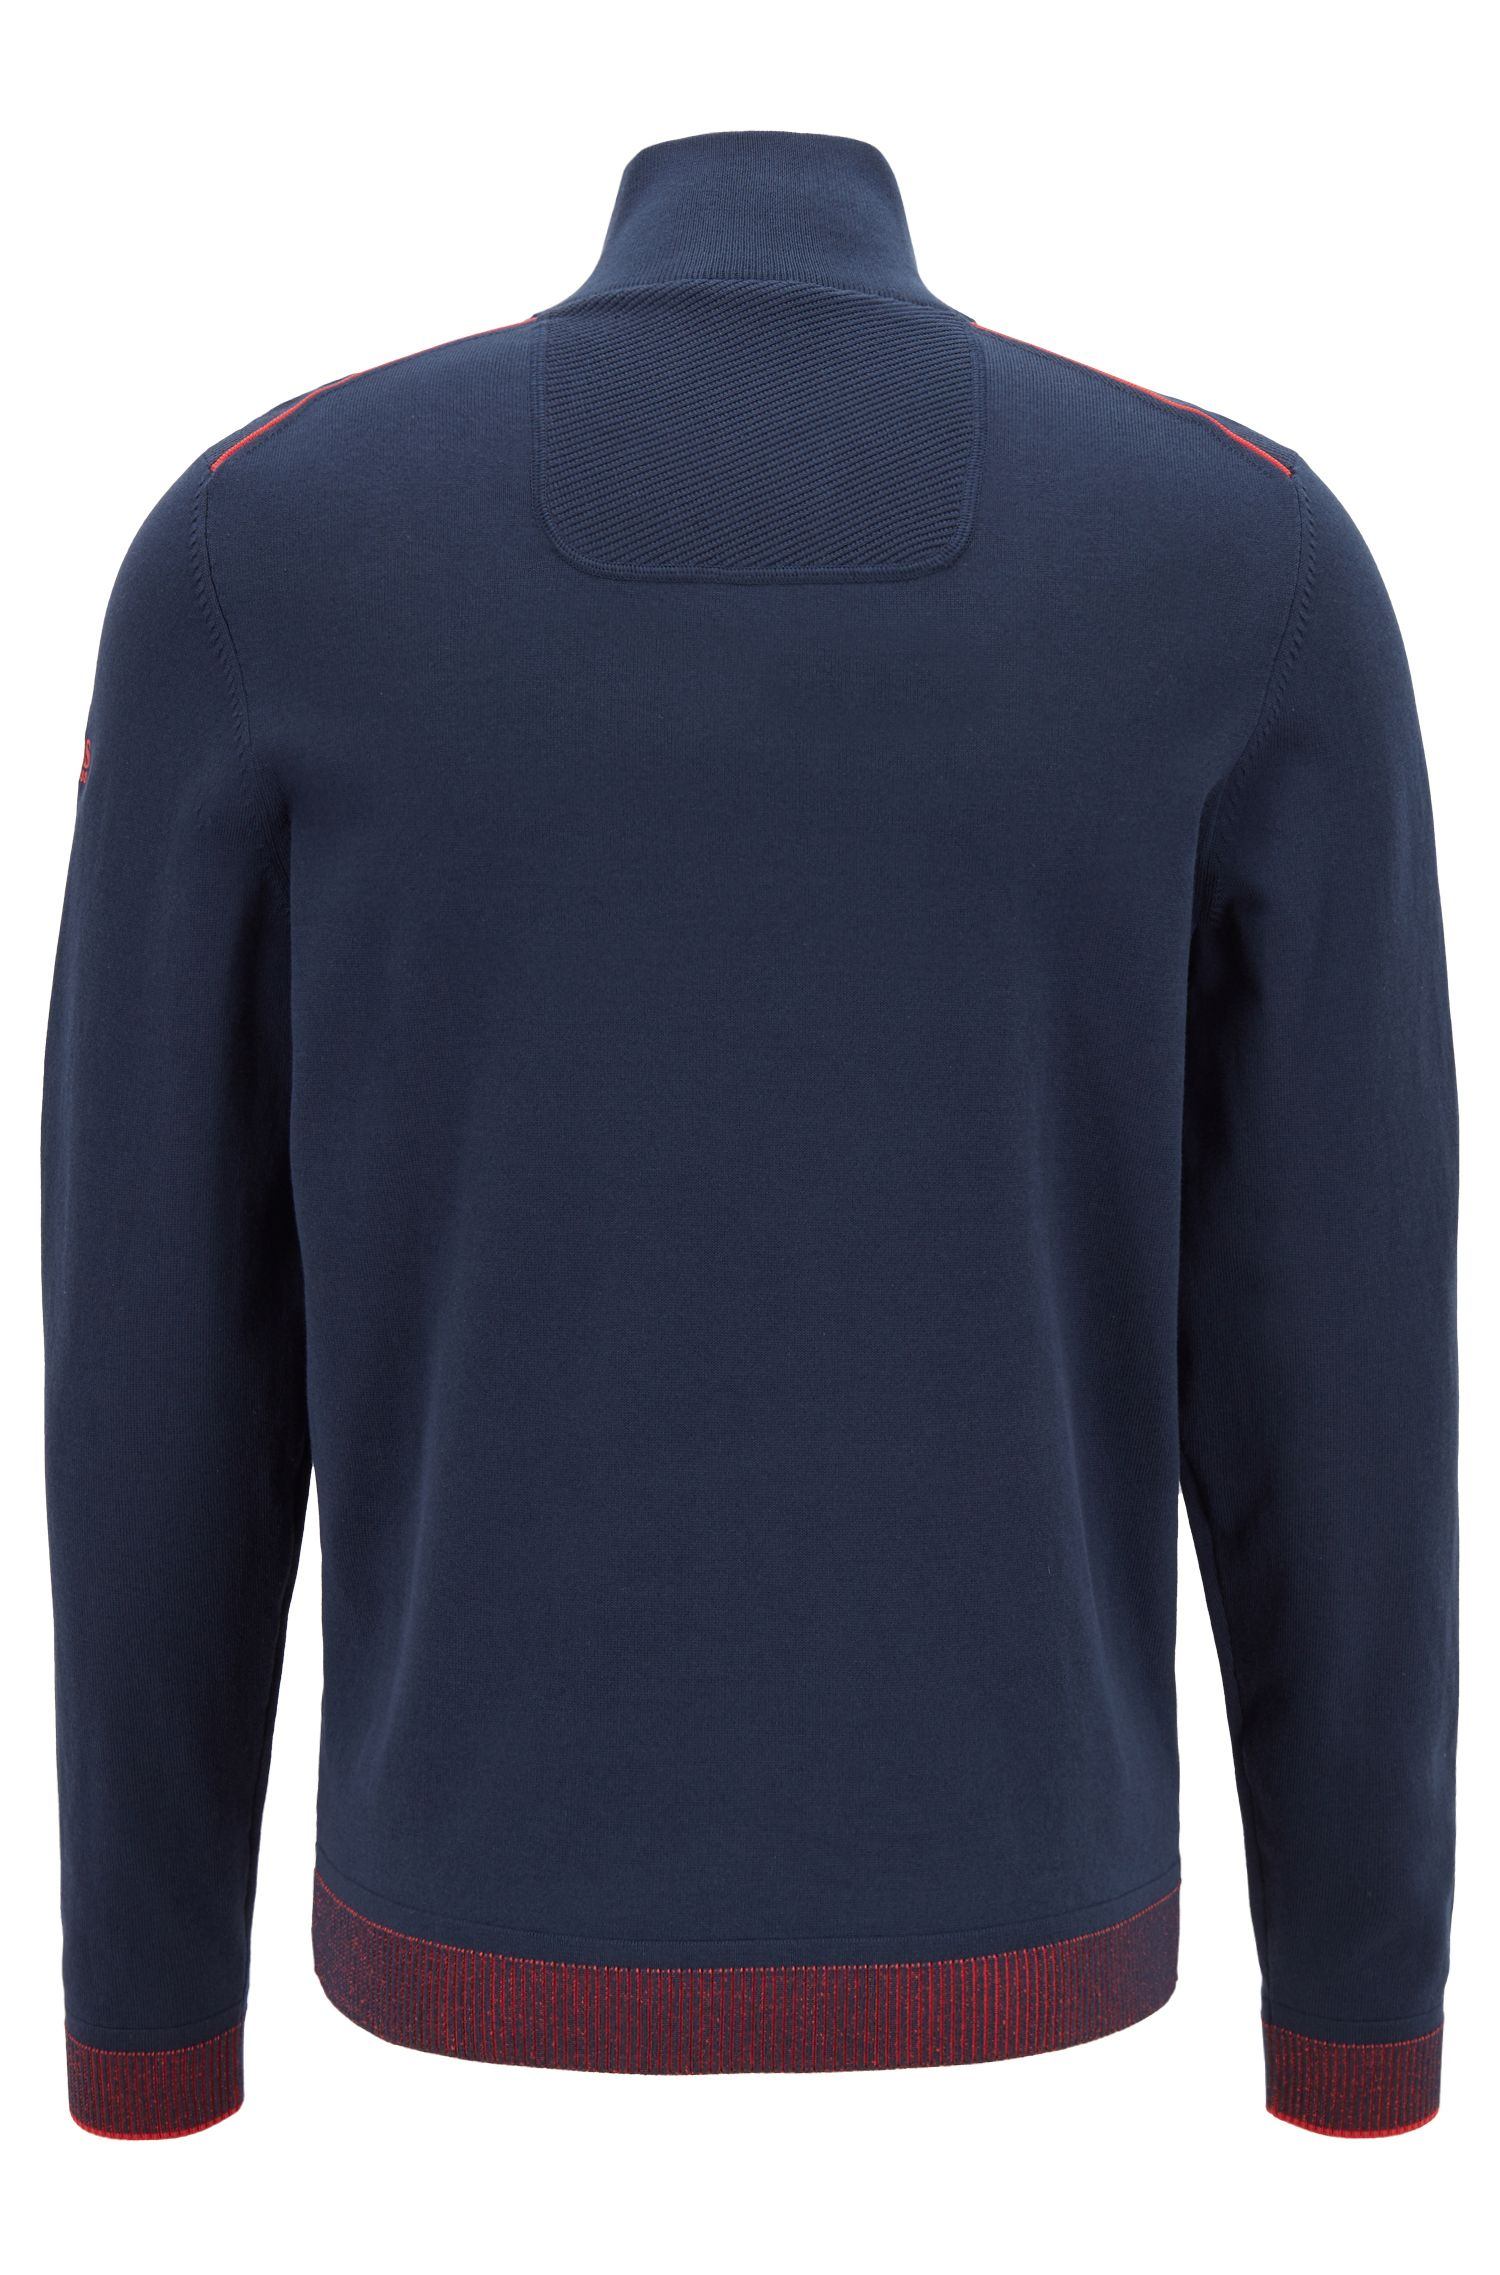 Zip-neck knitted sweater with piping details, Dark Blue